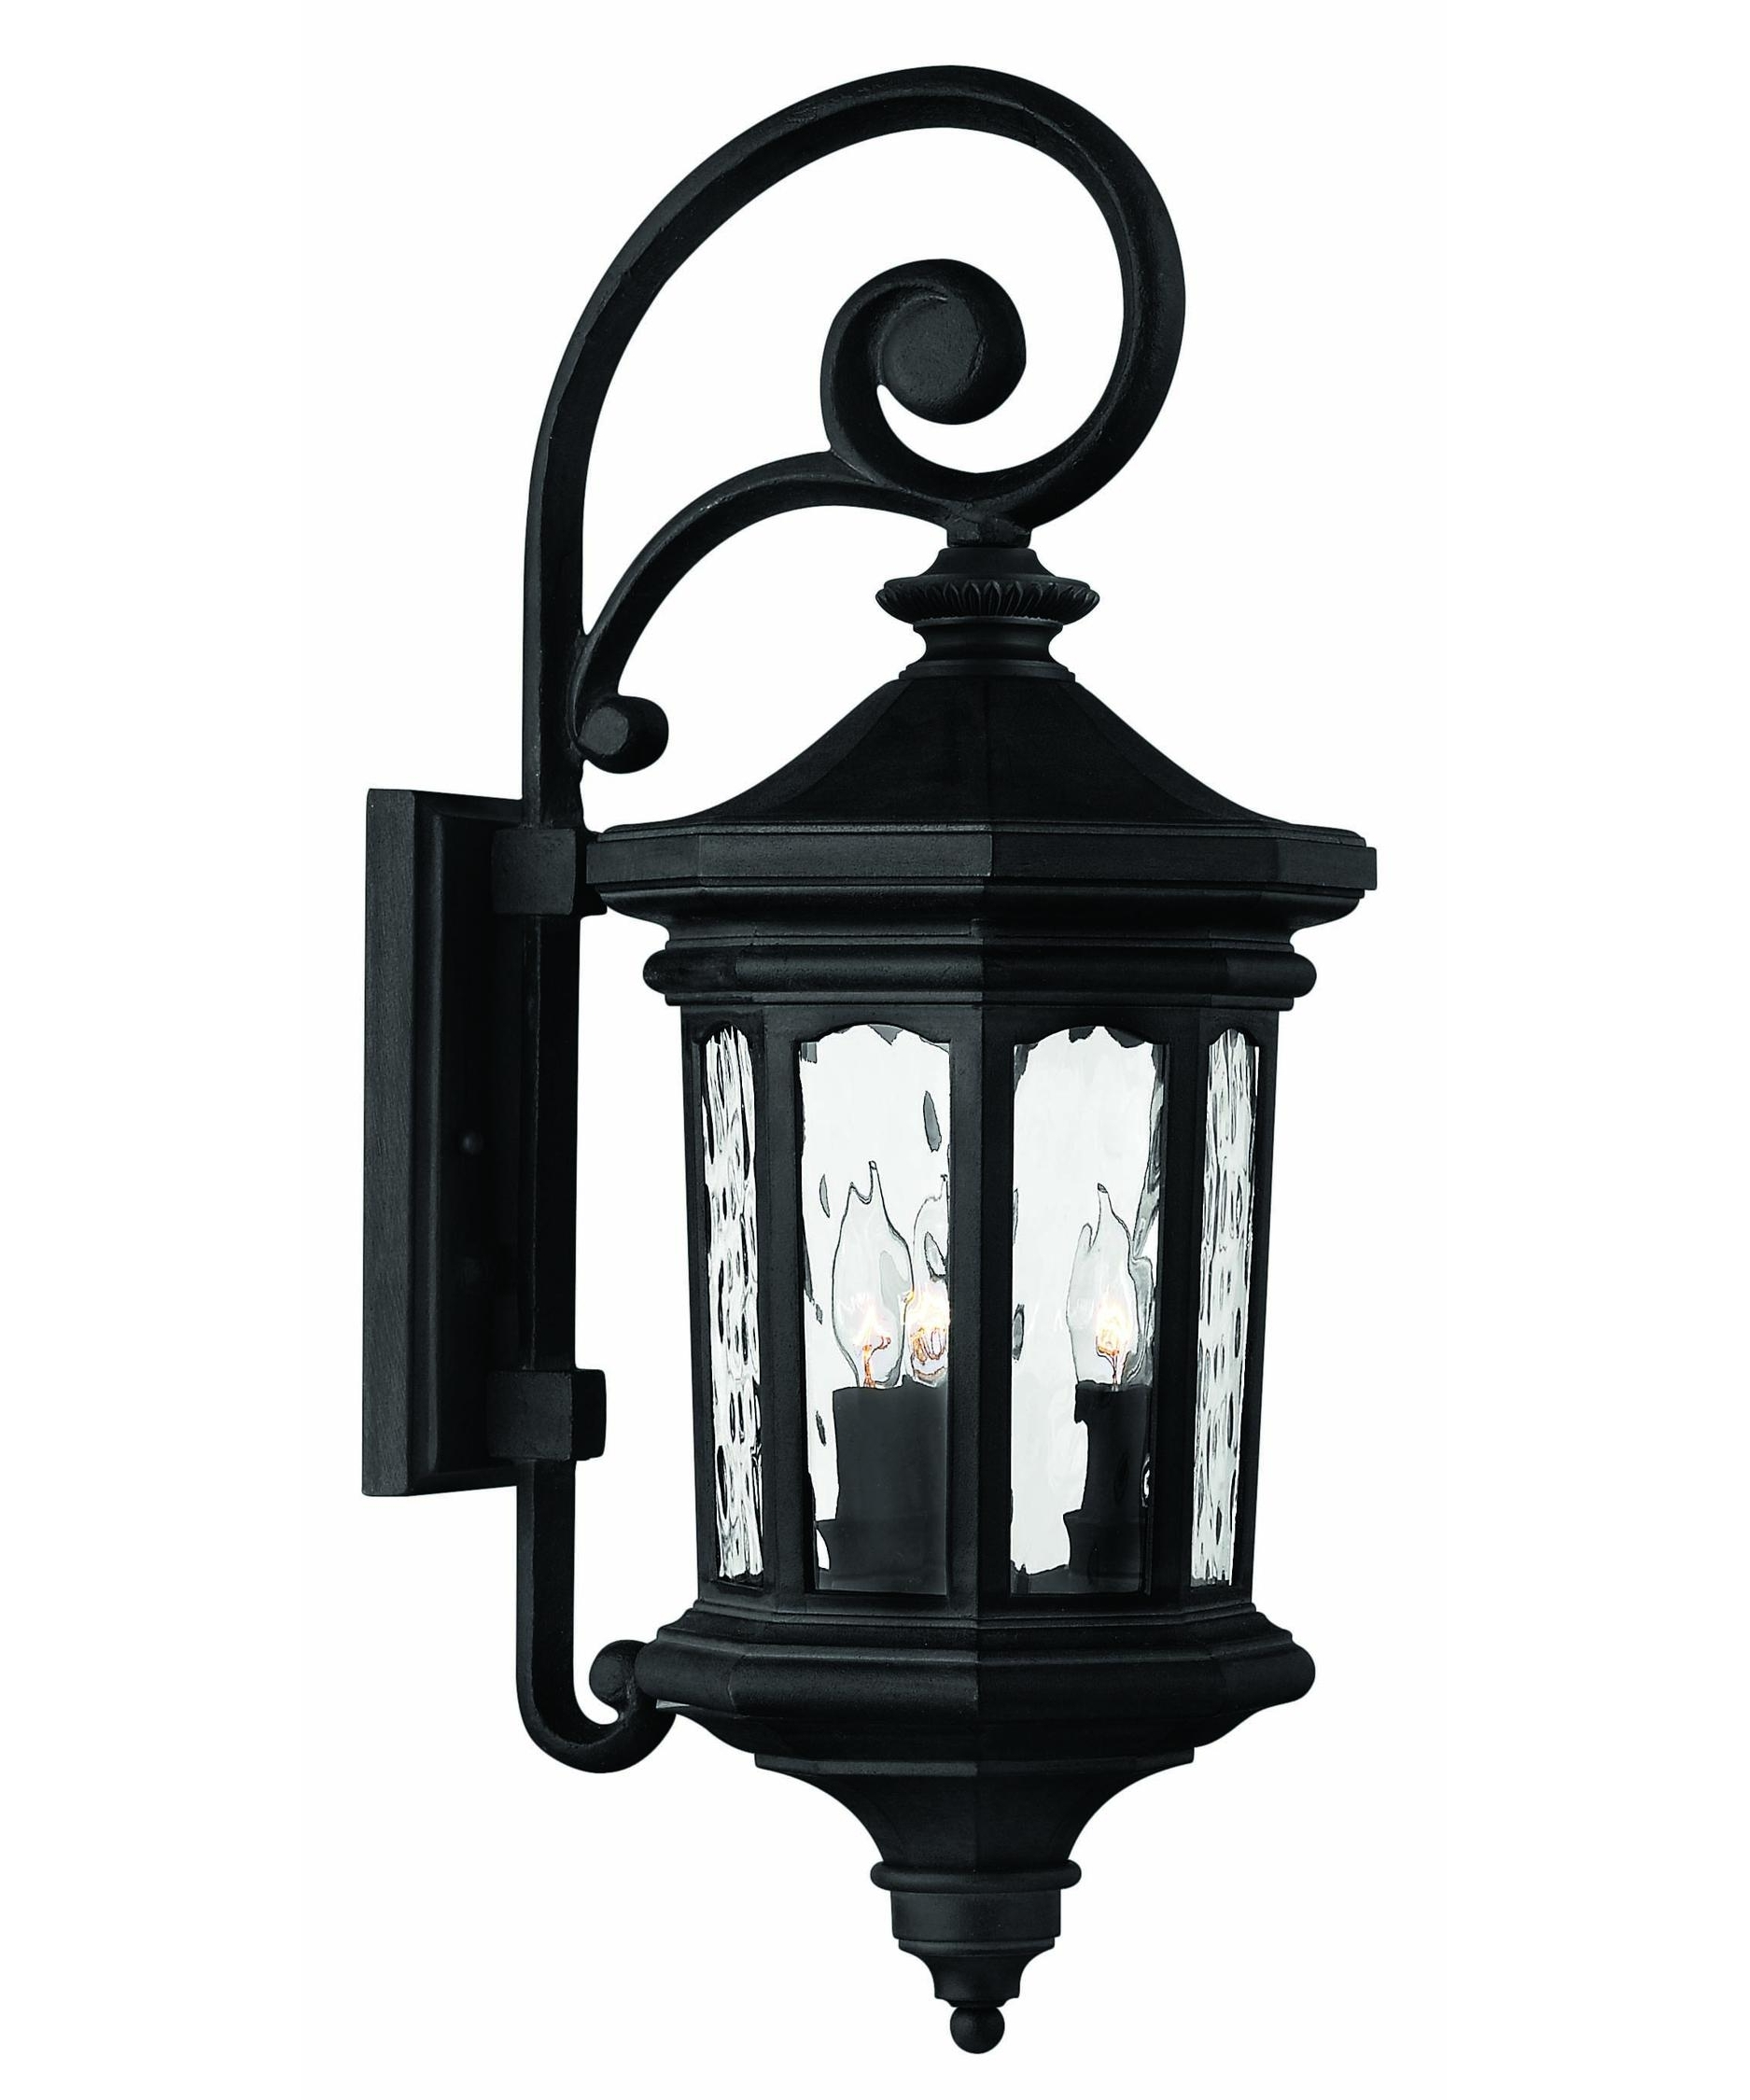 Most Recently Released Hinkley Lighting For Modern Garden Regarding Hinkley Lighting 1604 Raley 10 Inch Wide 3 Light Outdoor Wall Light (View 17 of 20)